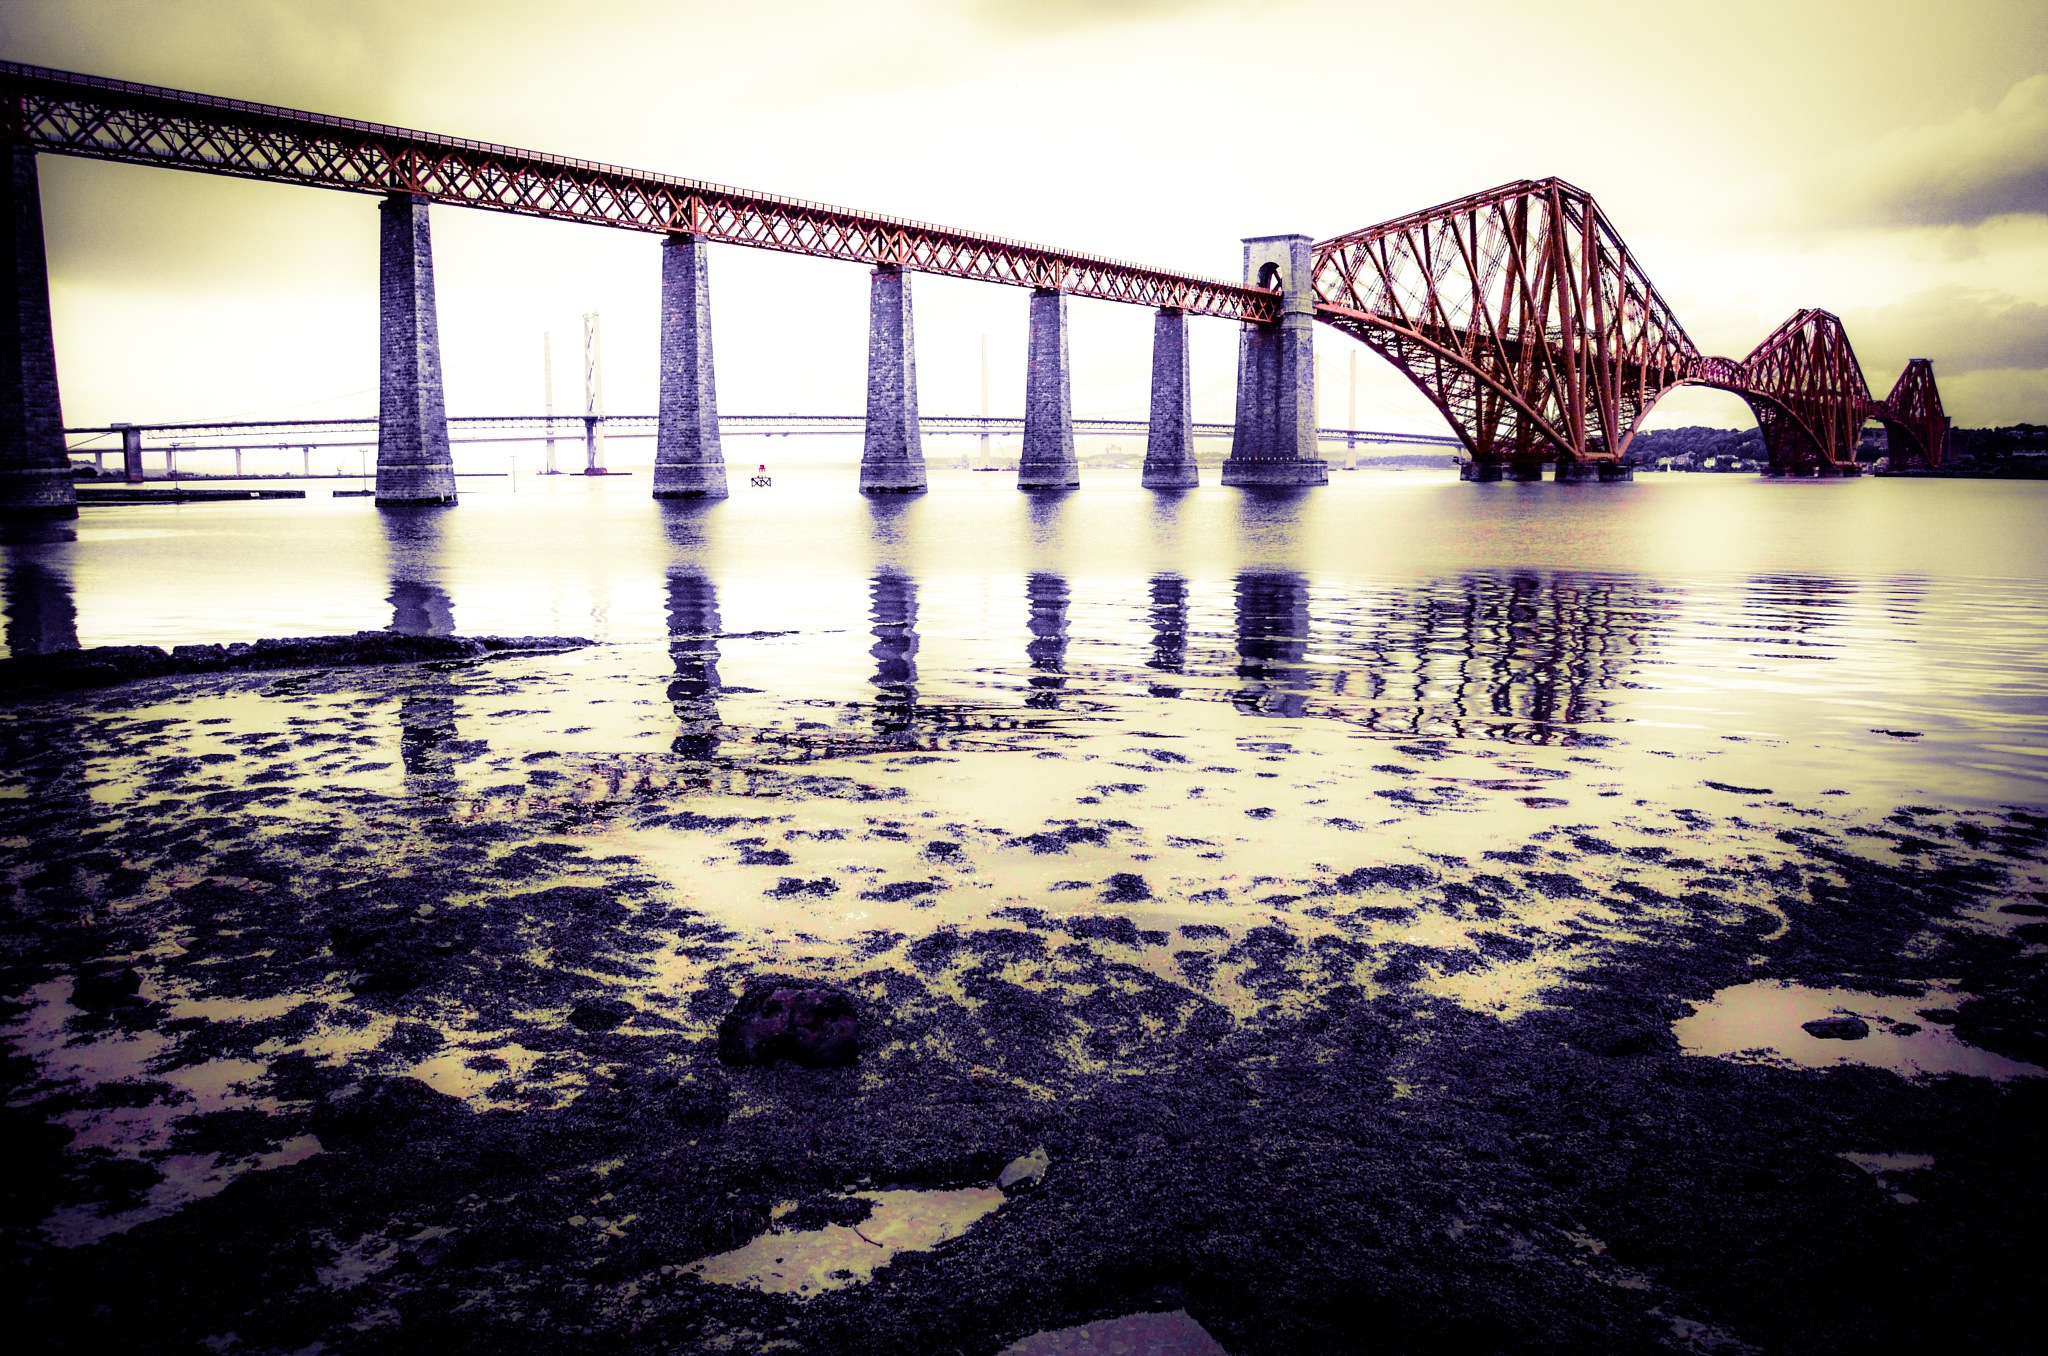 The Forth Link by Ray Clark